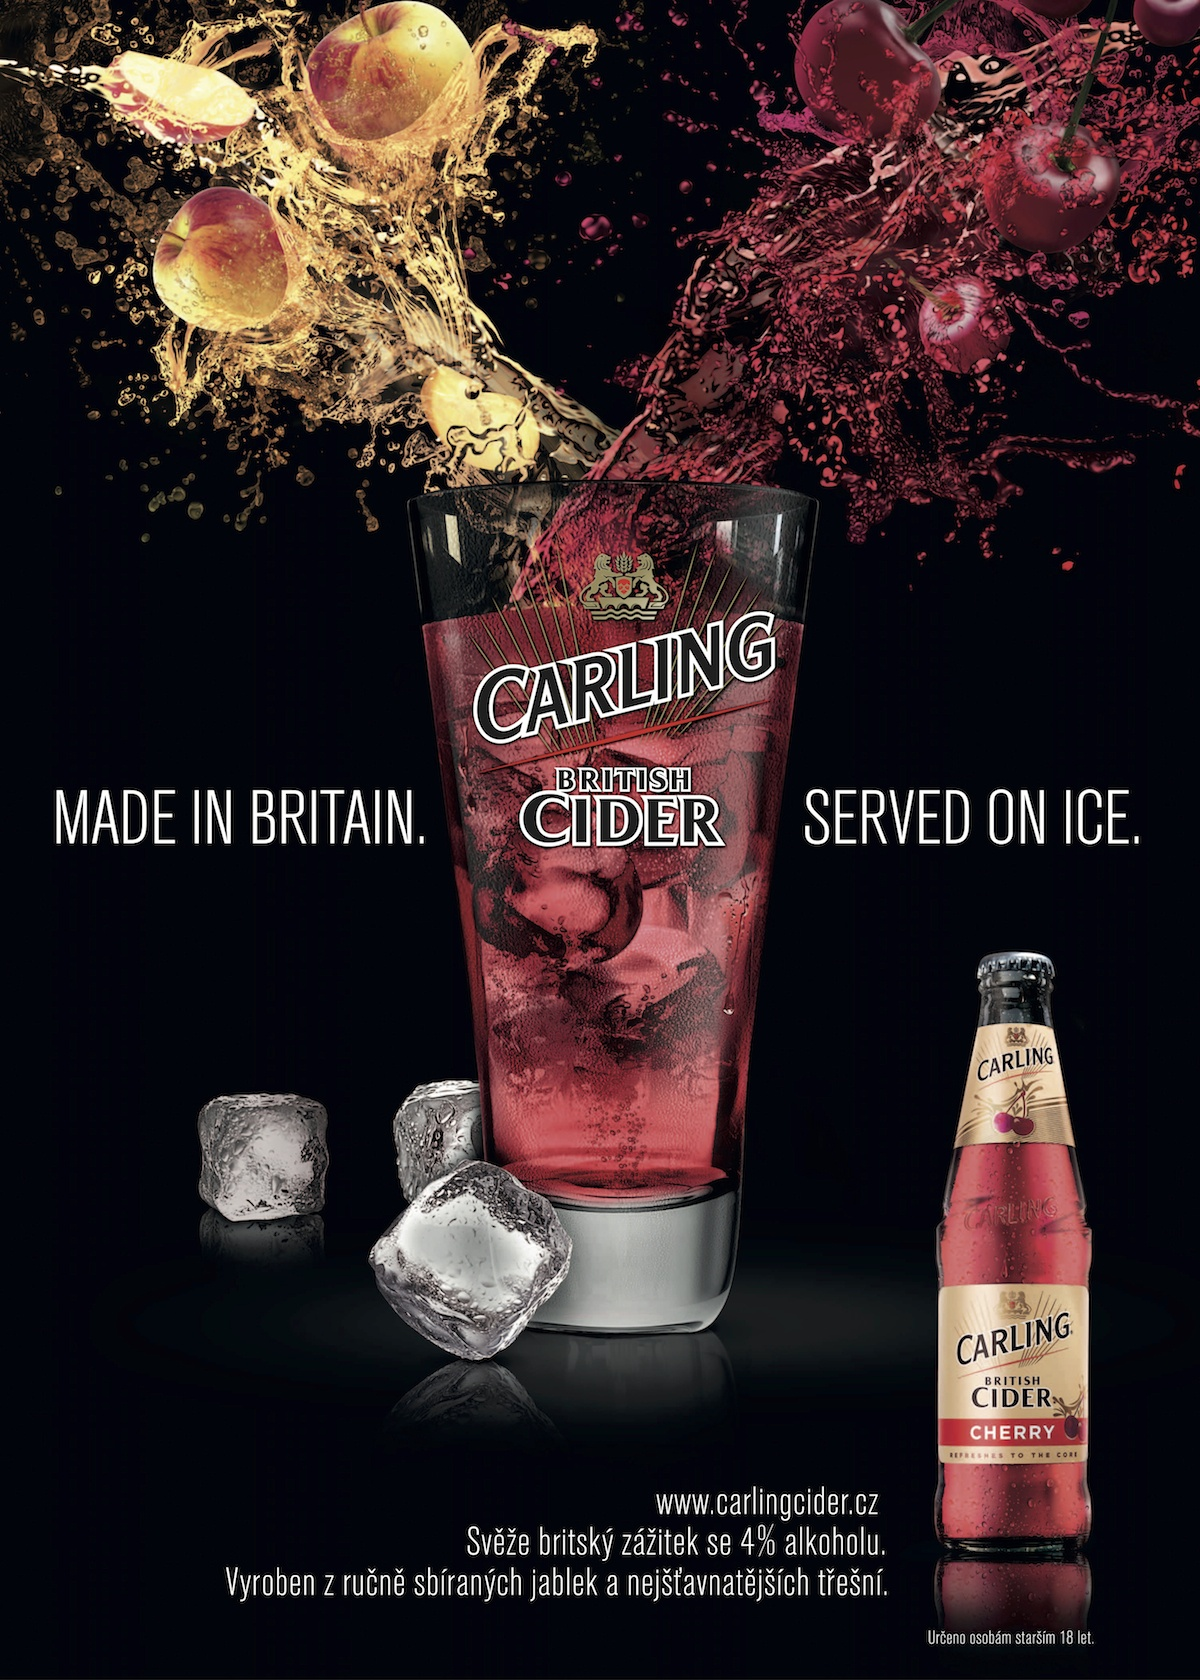 Made in Britain. Served on ice.